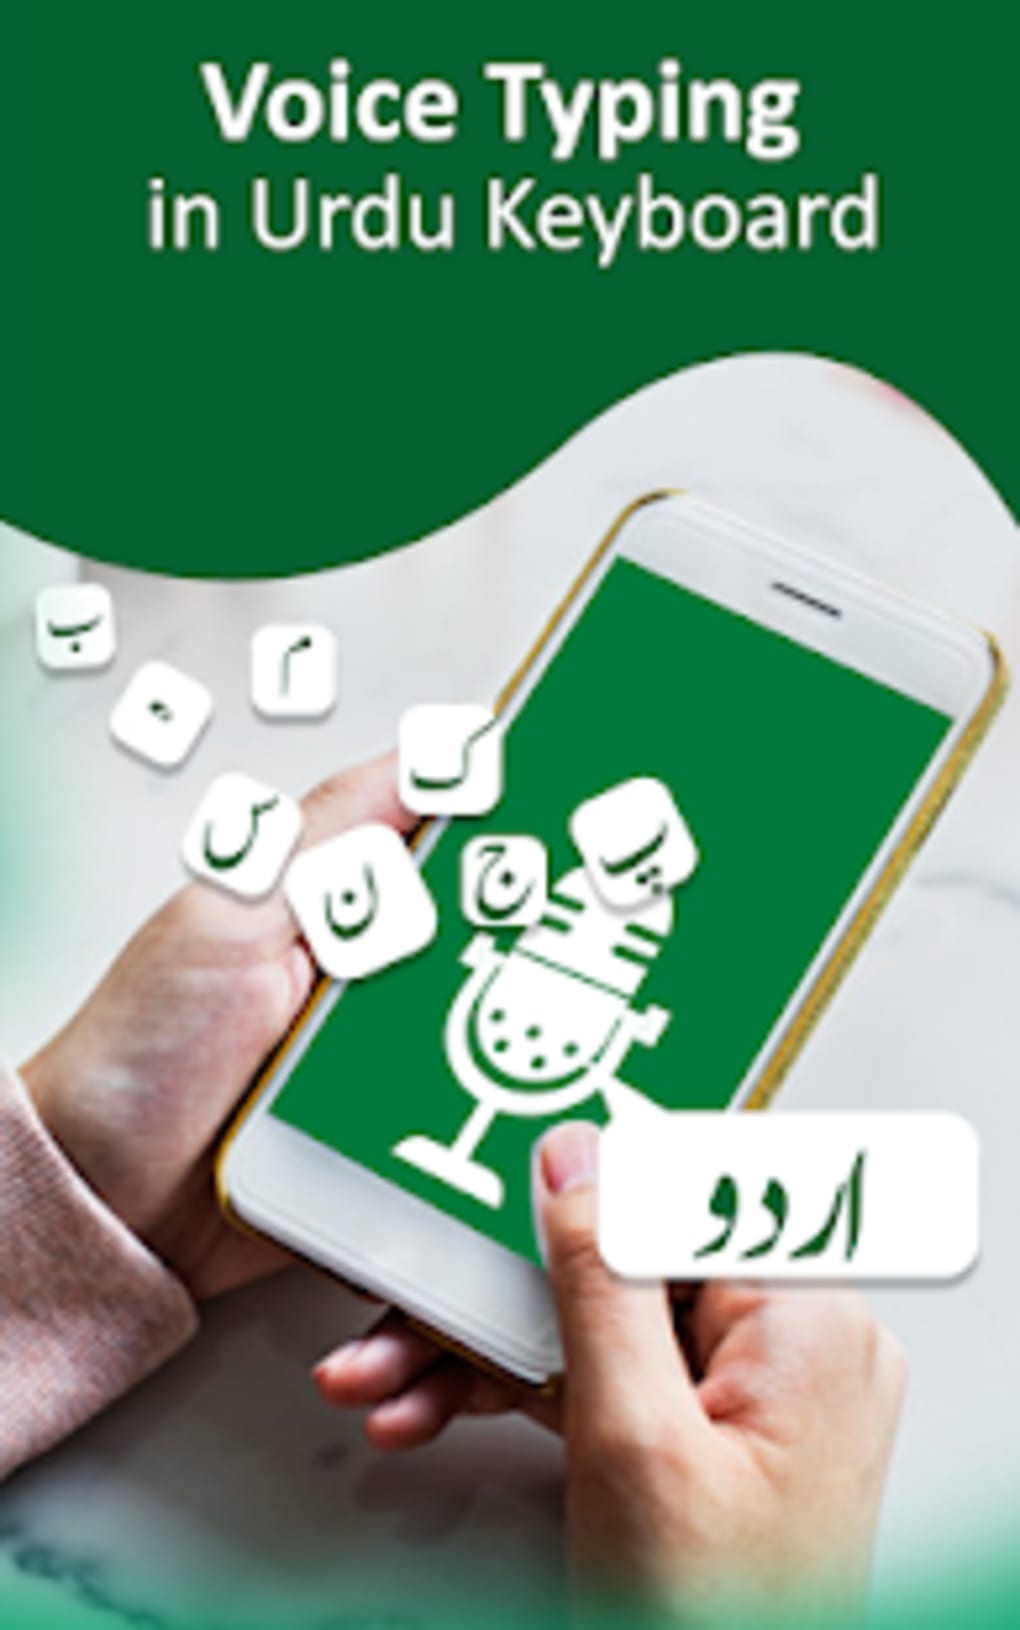 Urdu Speak to Type Voice keyboard for Android - Download